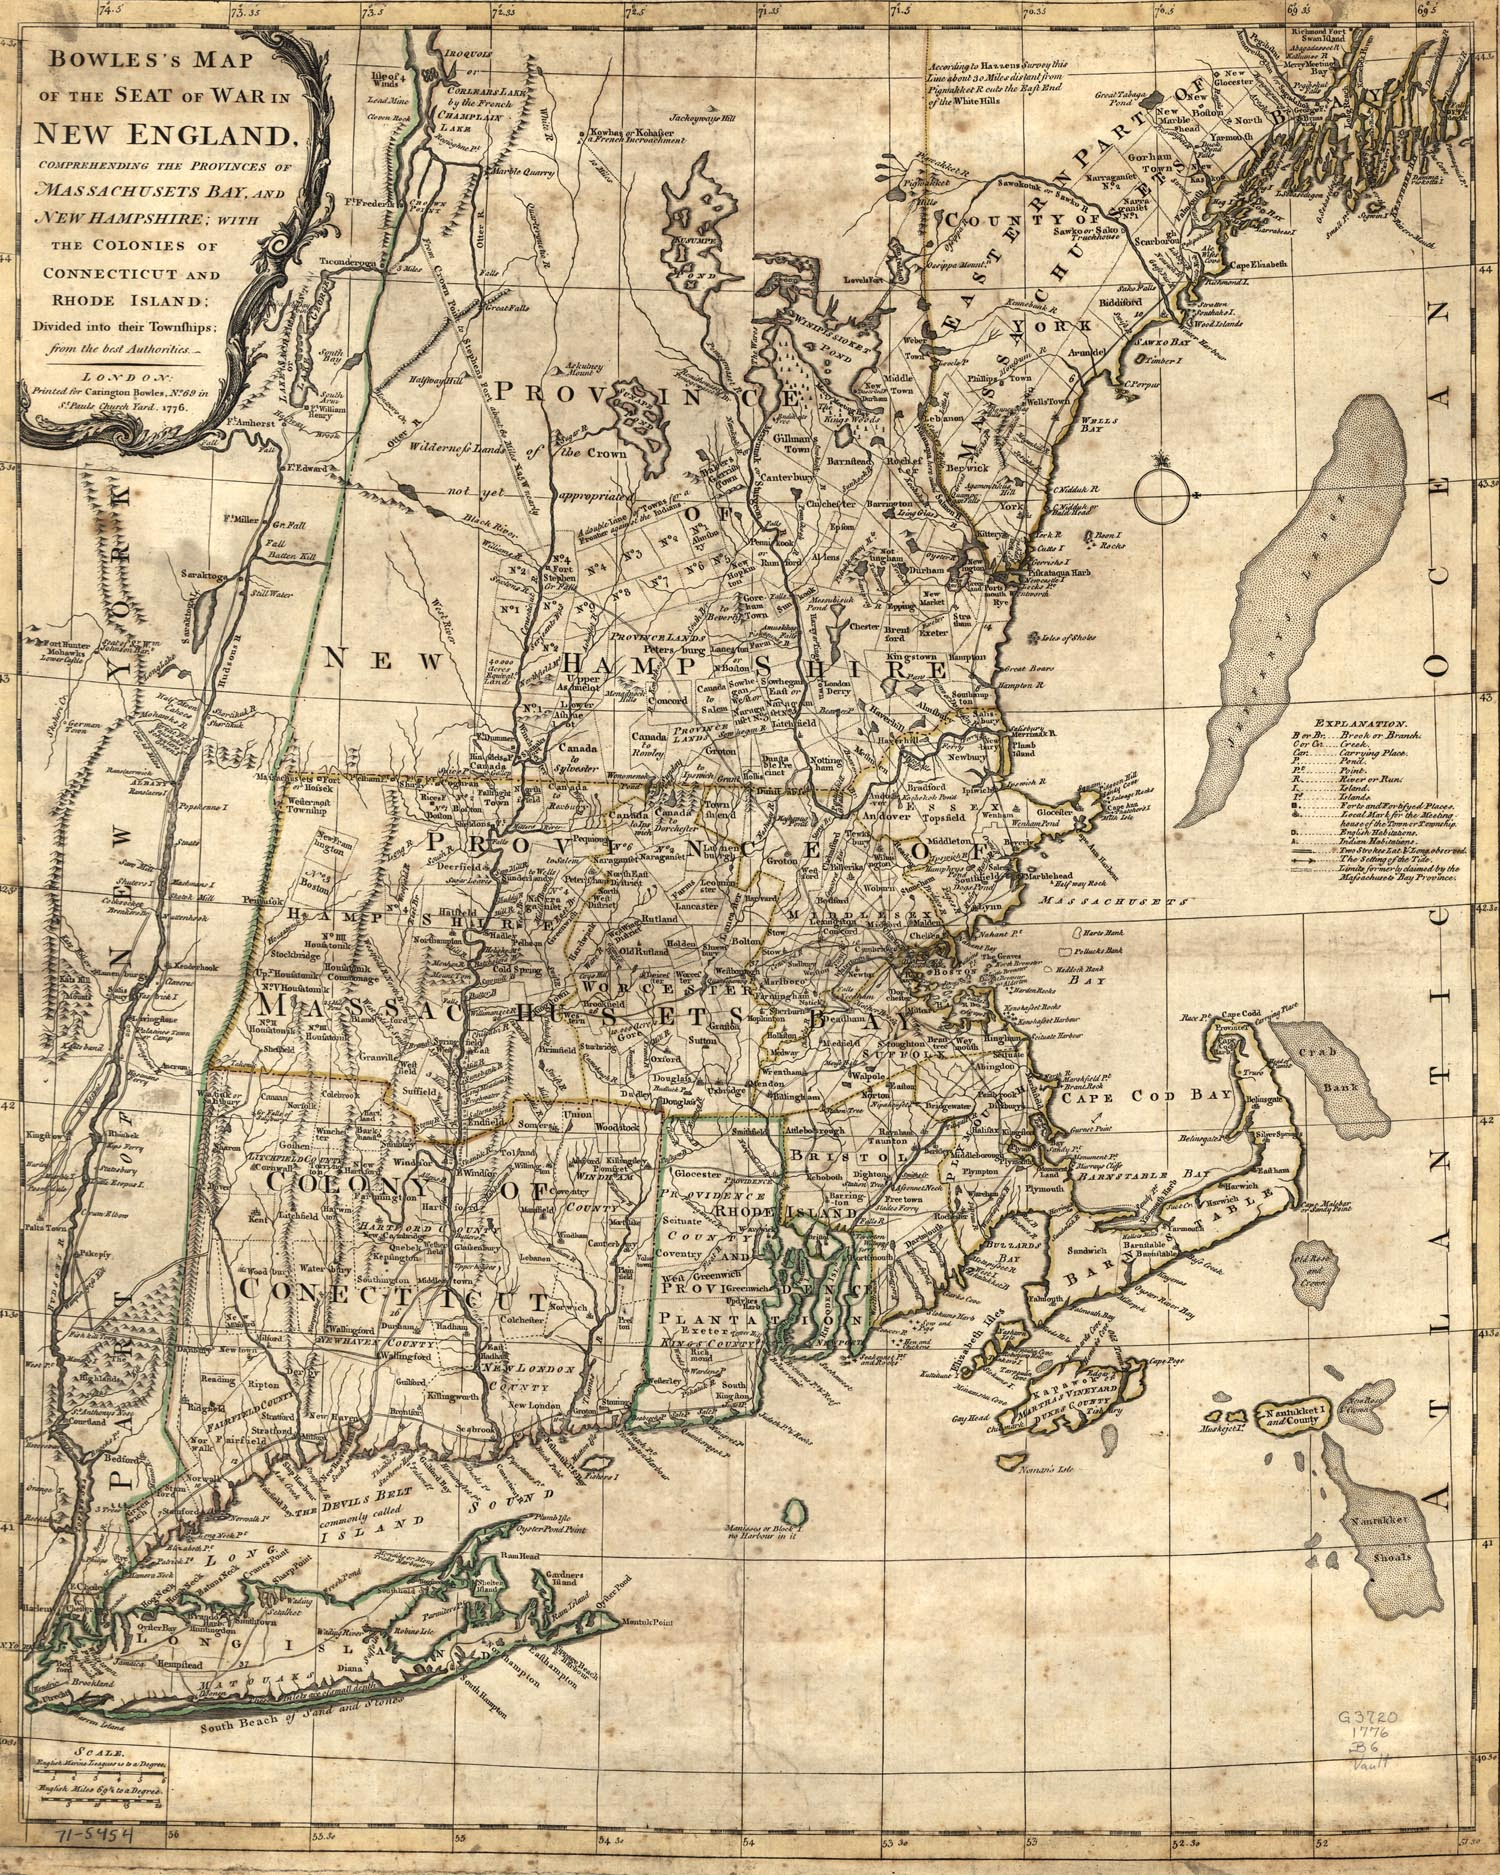 Download this New England Colonial Map picture